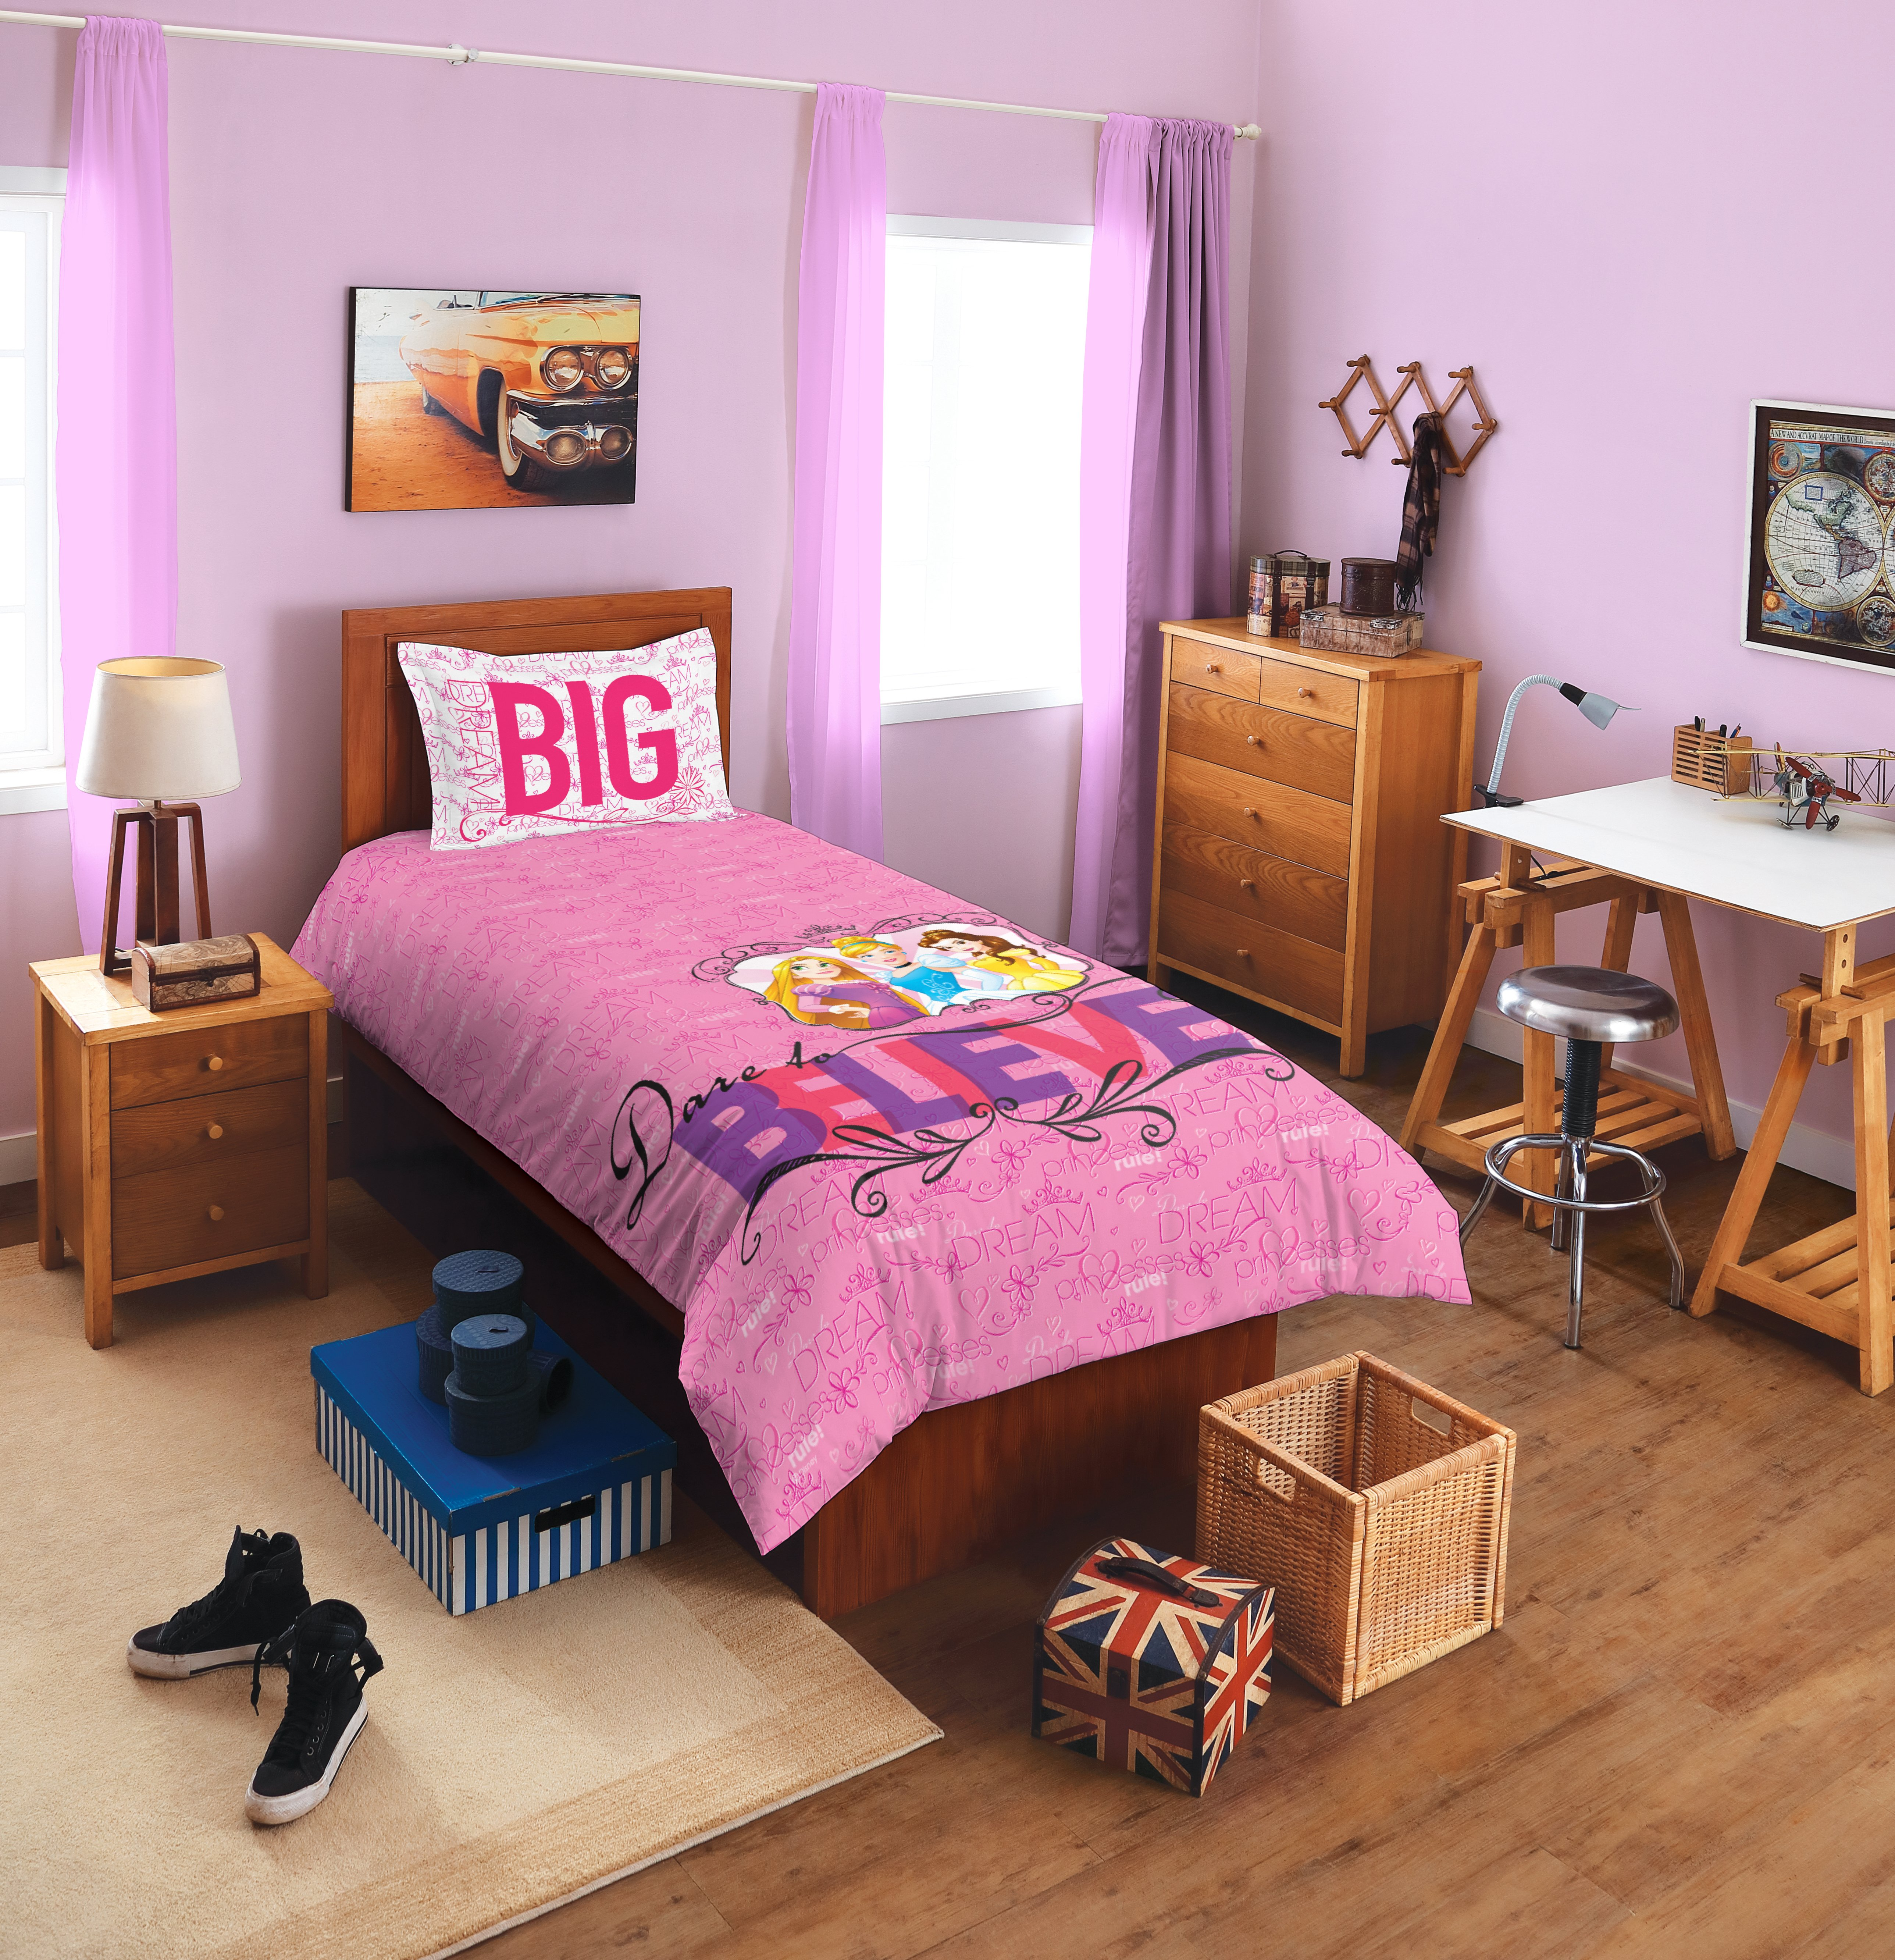 Spaces Disney Princess Pink Single Sheet With 1 Cotton Single Bed Sheets in Pink Colour by Spaces